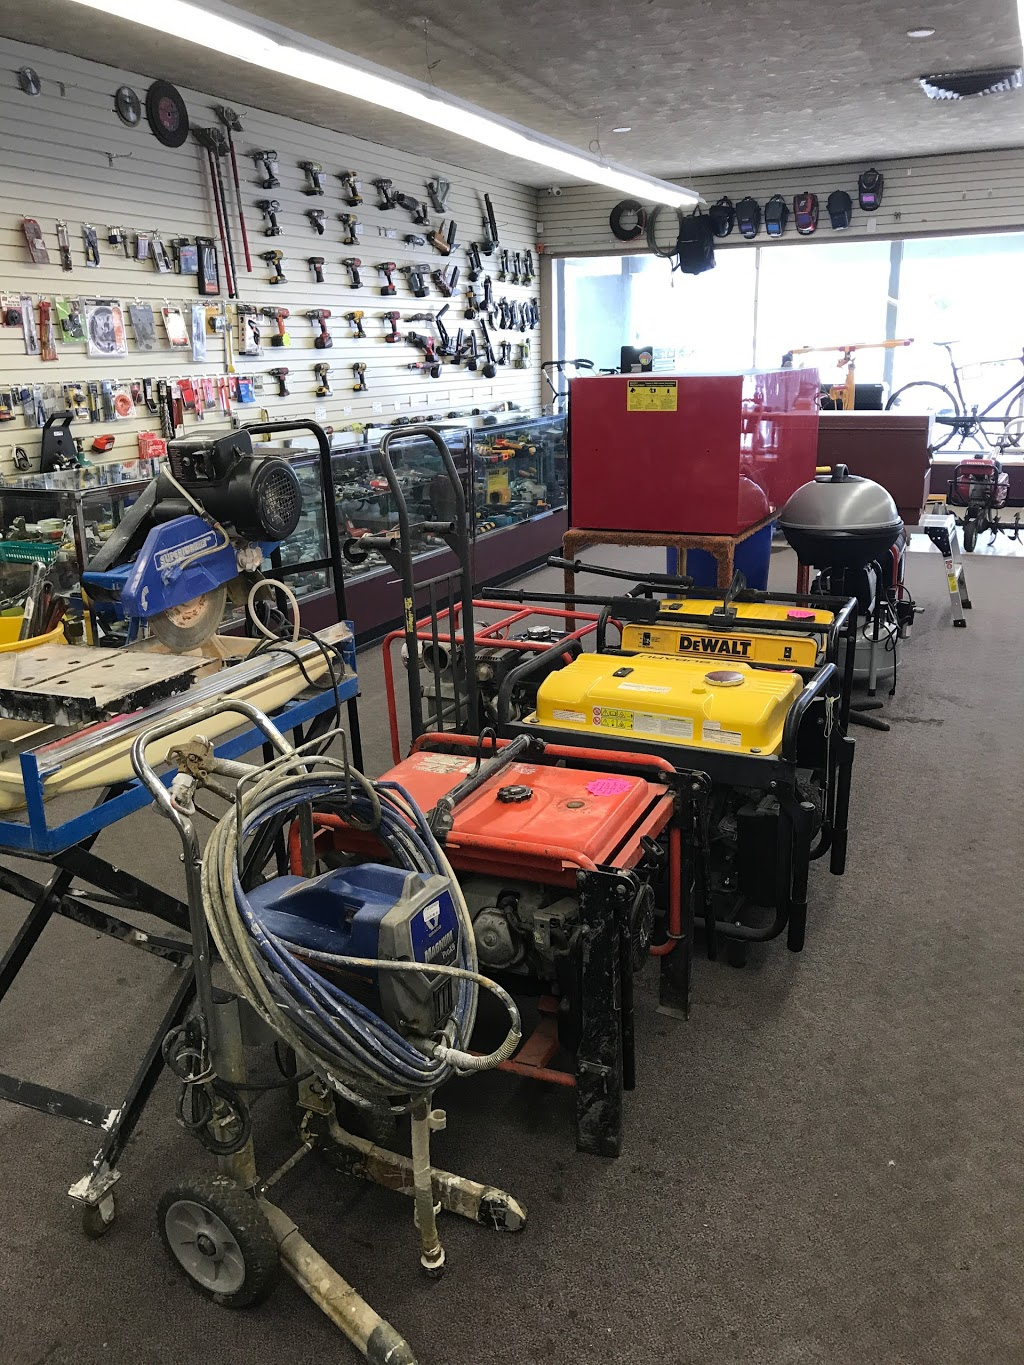 King's Pawn - Pawn Shop in Greeley - 2600 8th Ave, Greeley ...